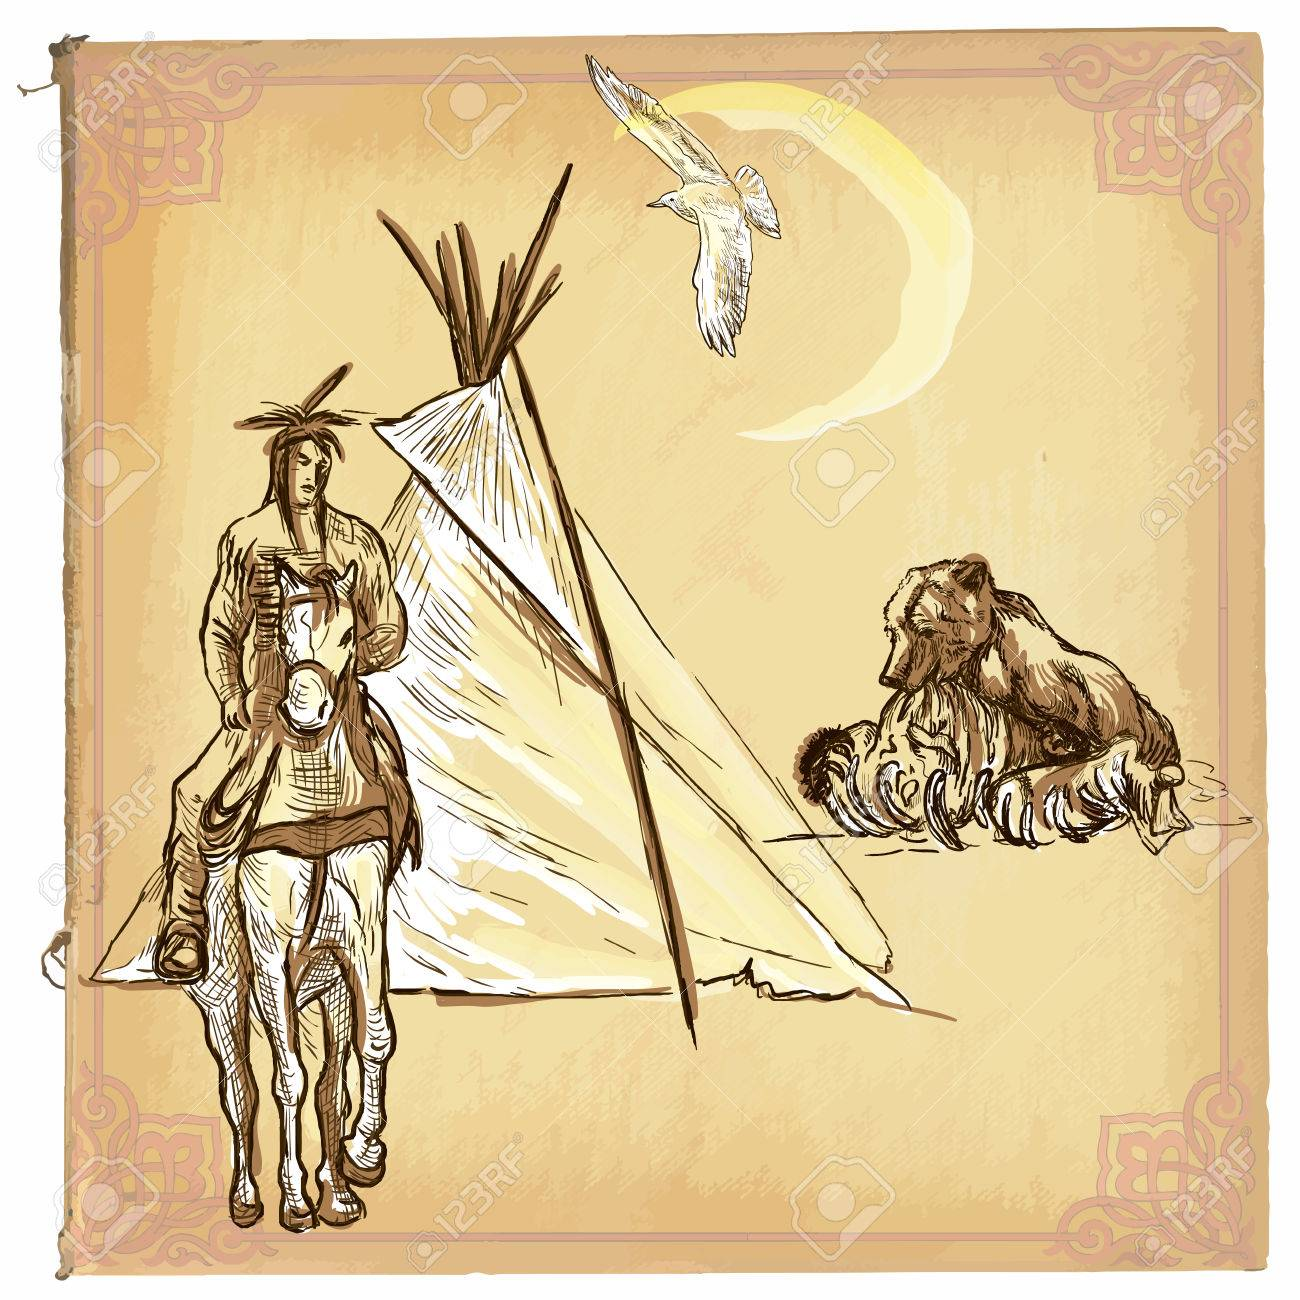 Illustration Colored Line Art Native American Sketch Of An North Royalty Free Cliparts Vectors And Stock Illustration Image 56383492